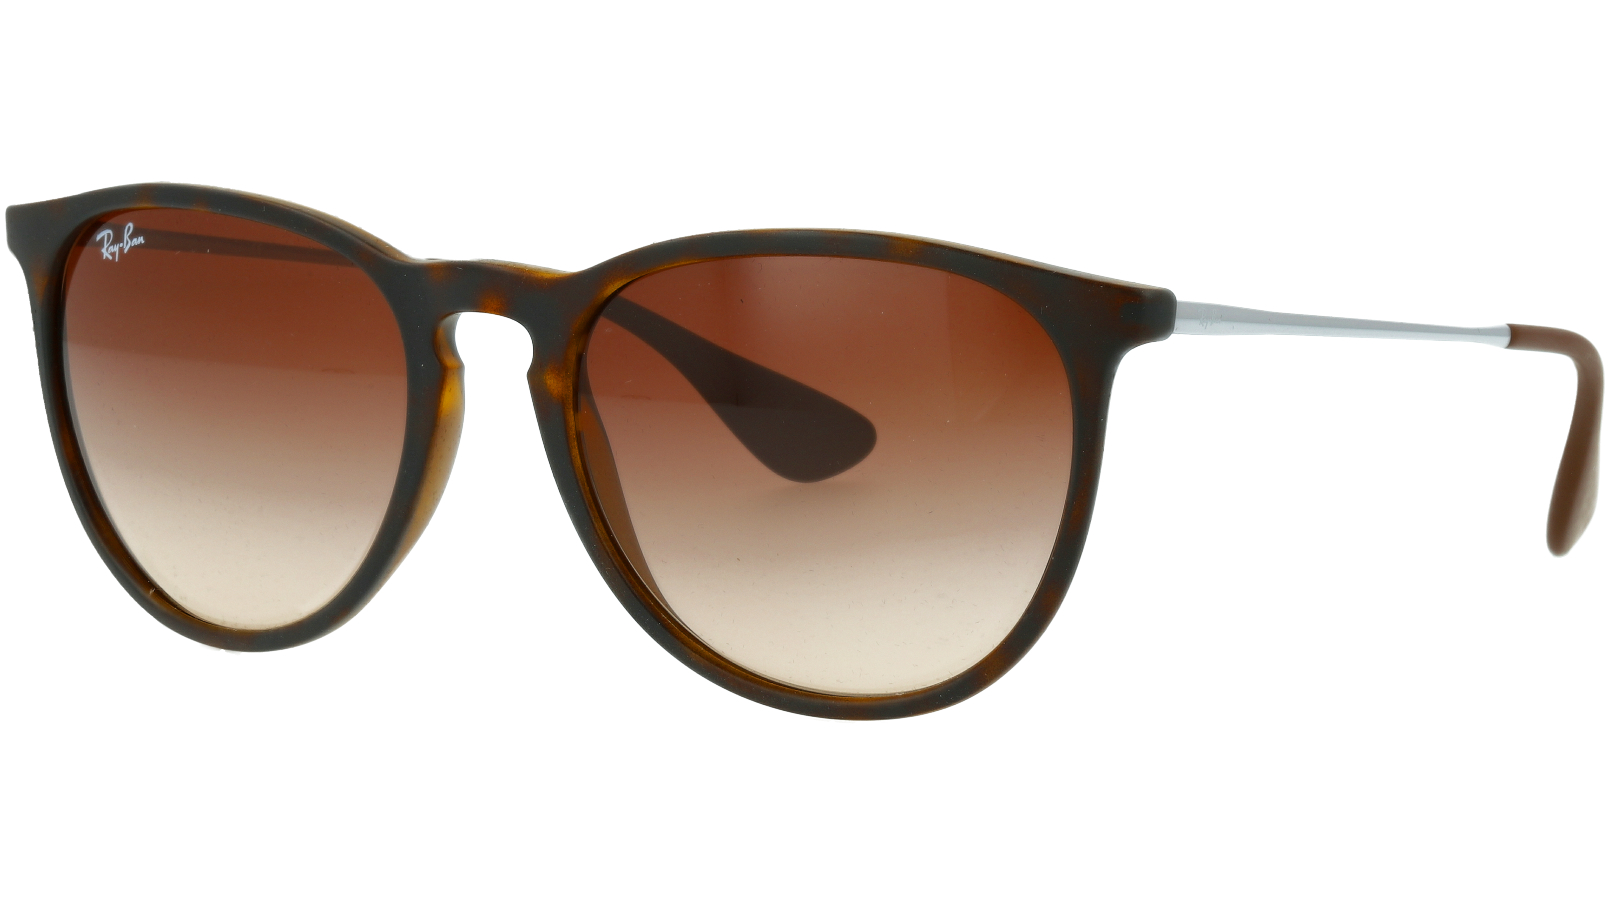 Ray-Ban RB4171 865/13 54 RUBBER Sunglasses